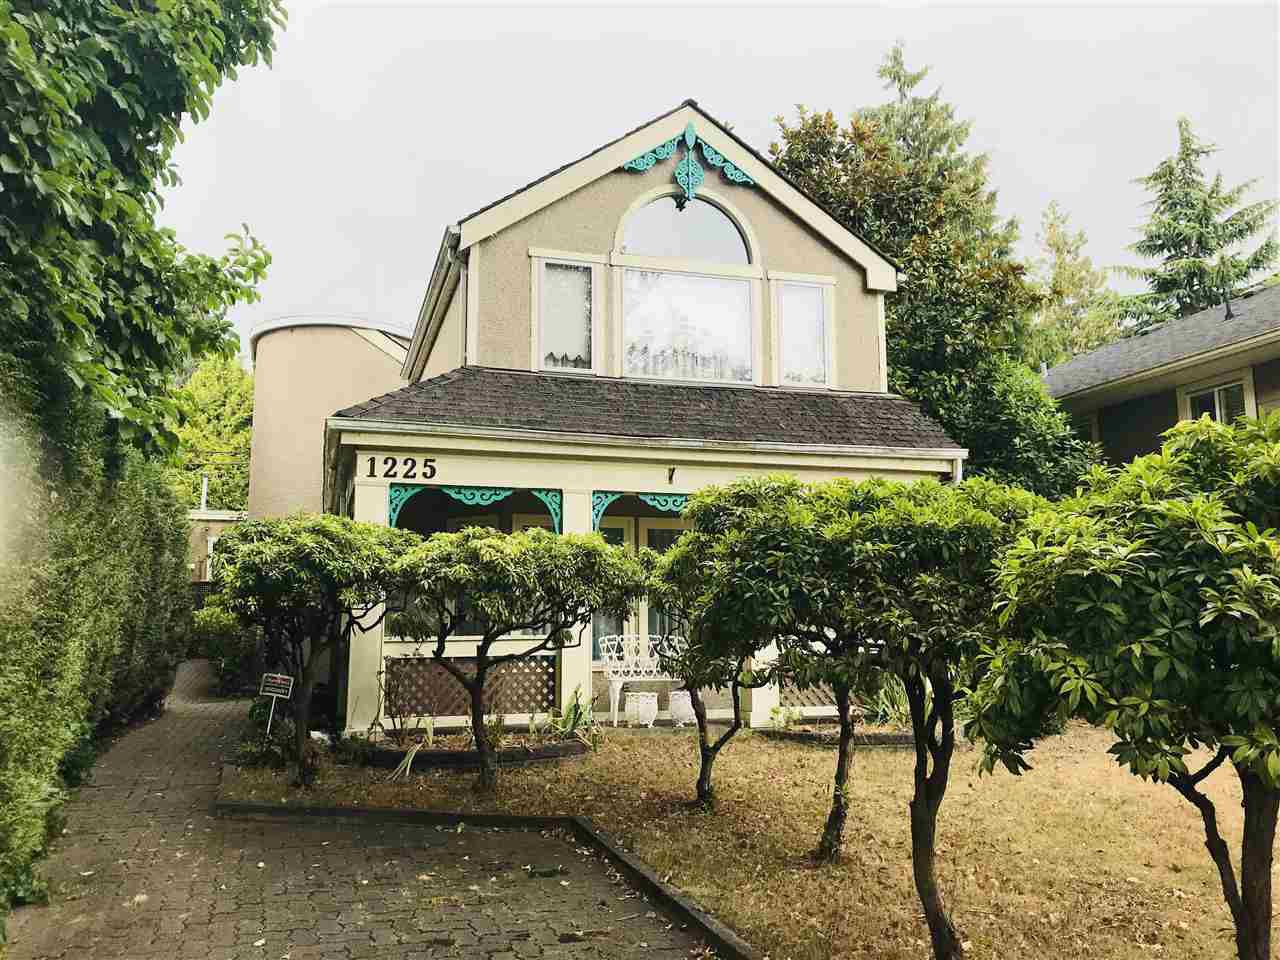 Main Photo: 1225 PARK DRIVE in Vancouver: South Granville House for sale (Vancouver West)  : MLS®# R2303465